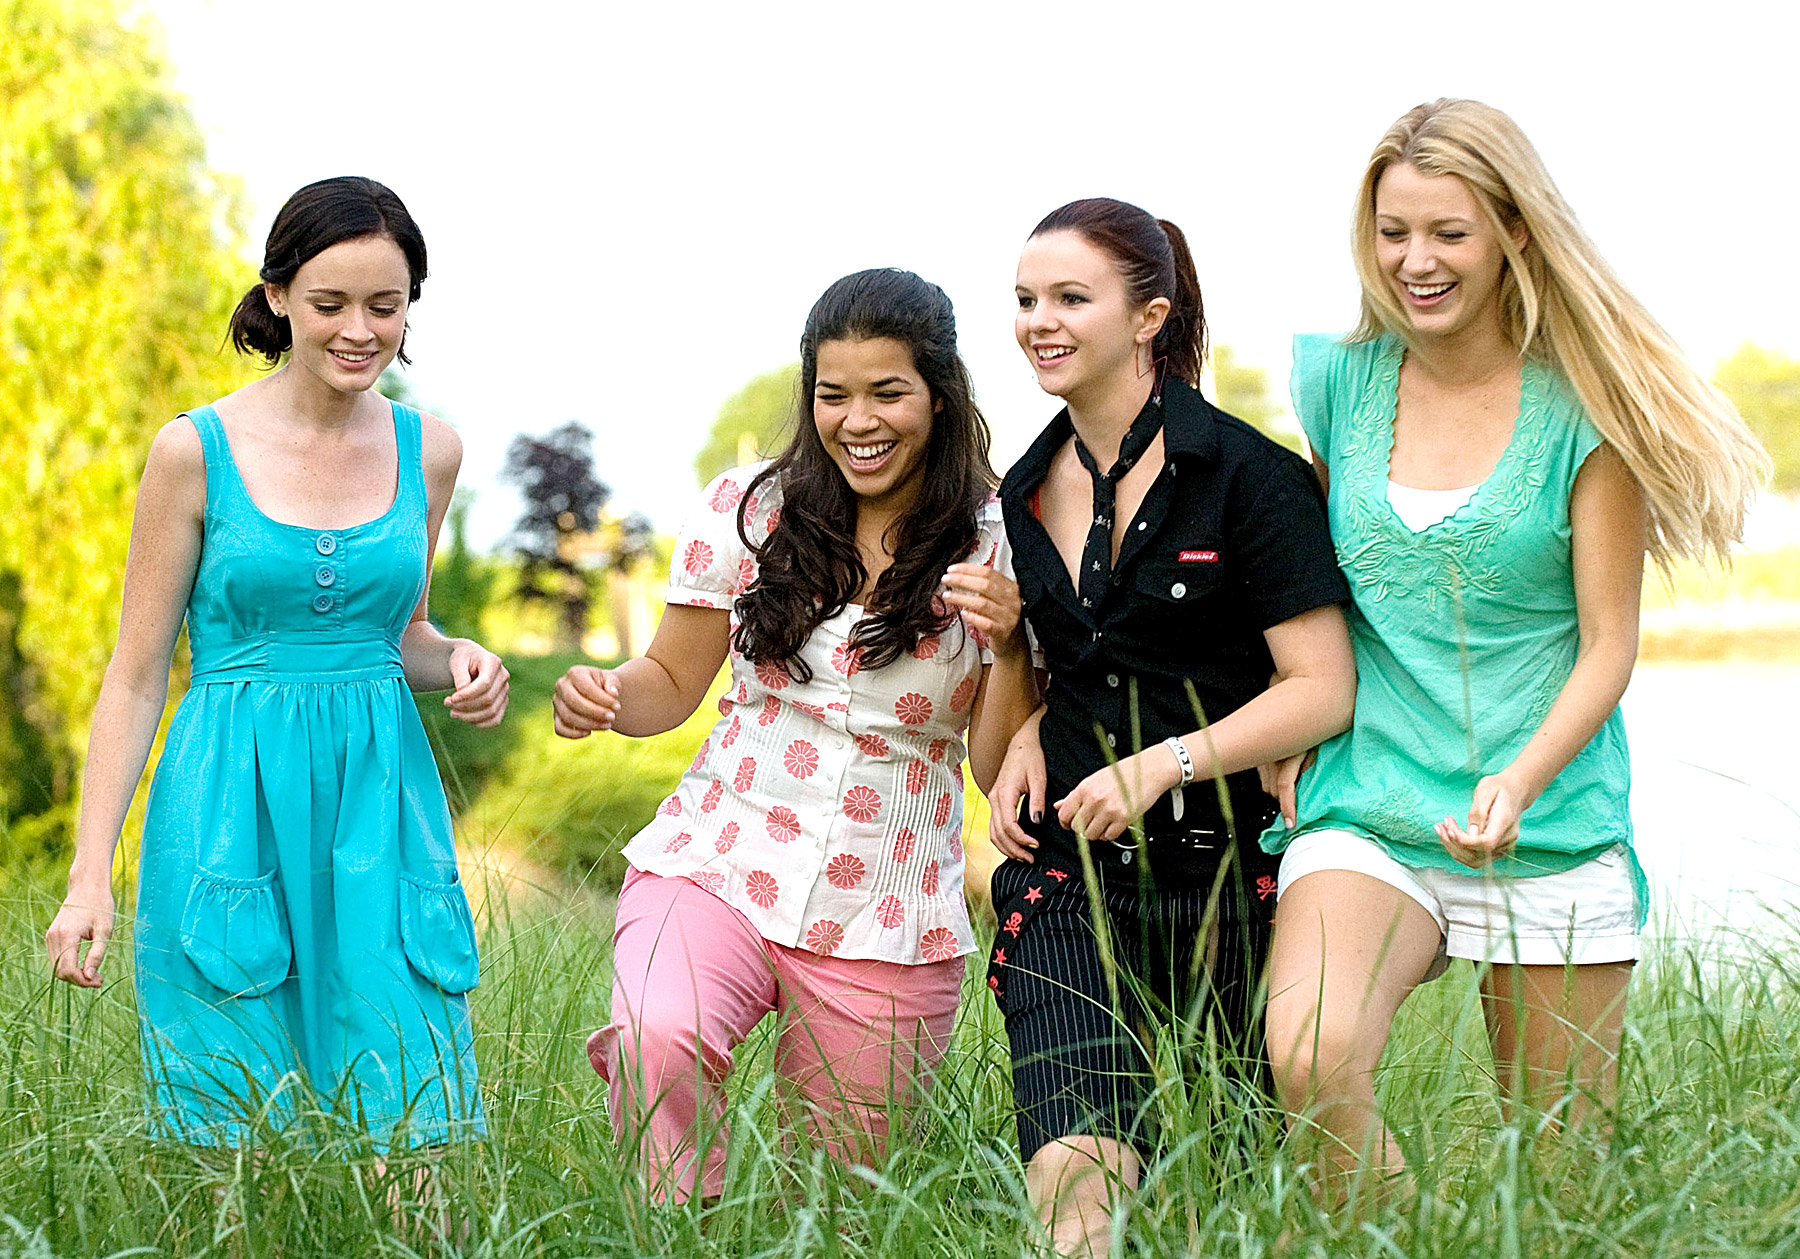 """A new member was just initiated into the """"Sisterhood of the Traveling Pants"""" fam"""